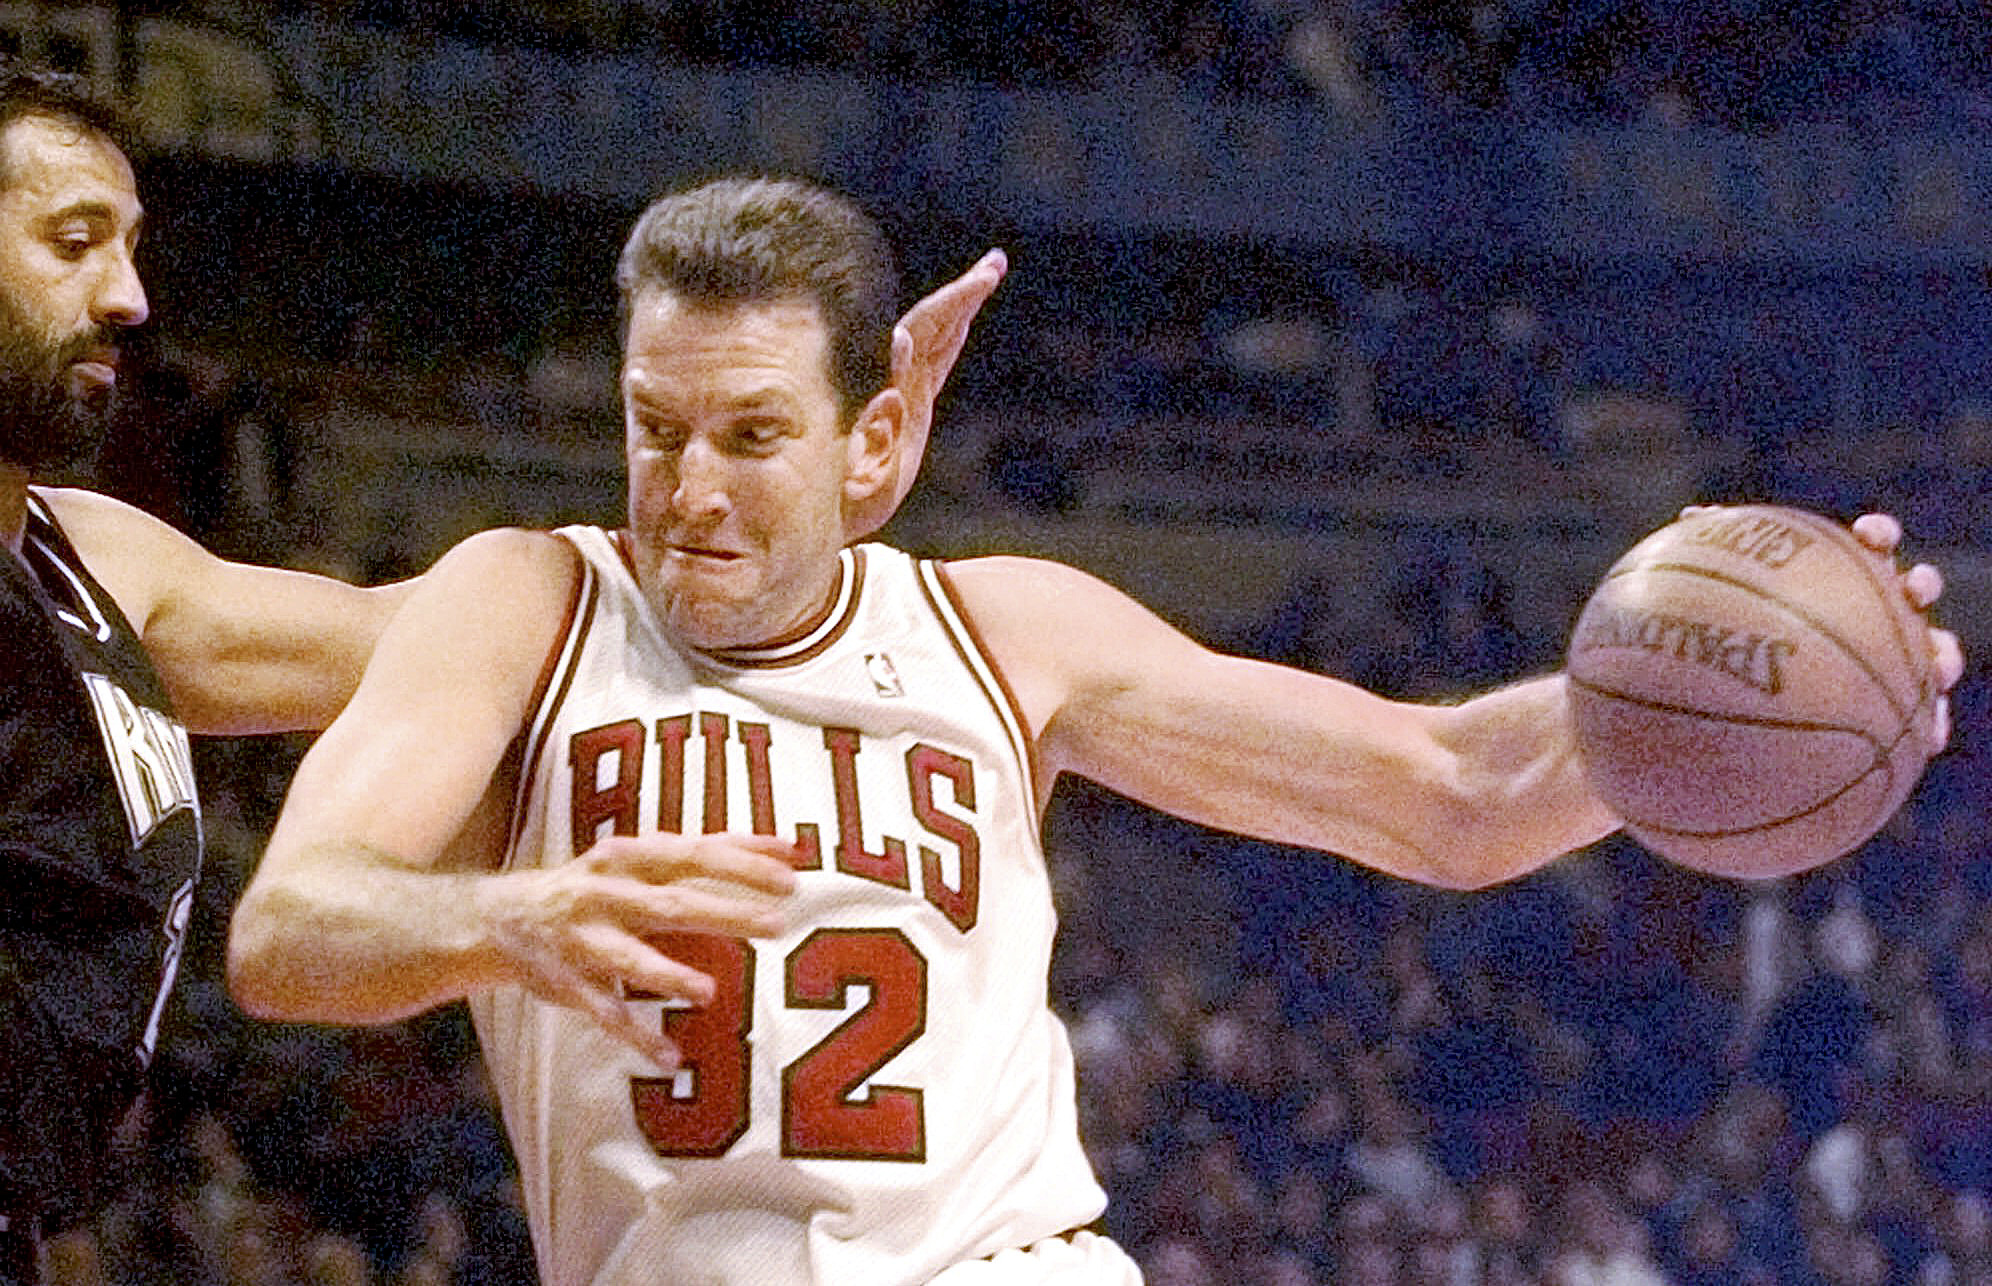 Former Bulls player Will Perdue says he had a good relationship with Michael Jordan's father James.